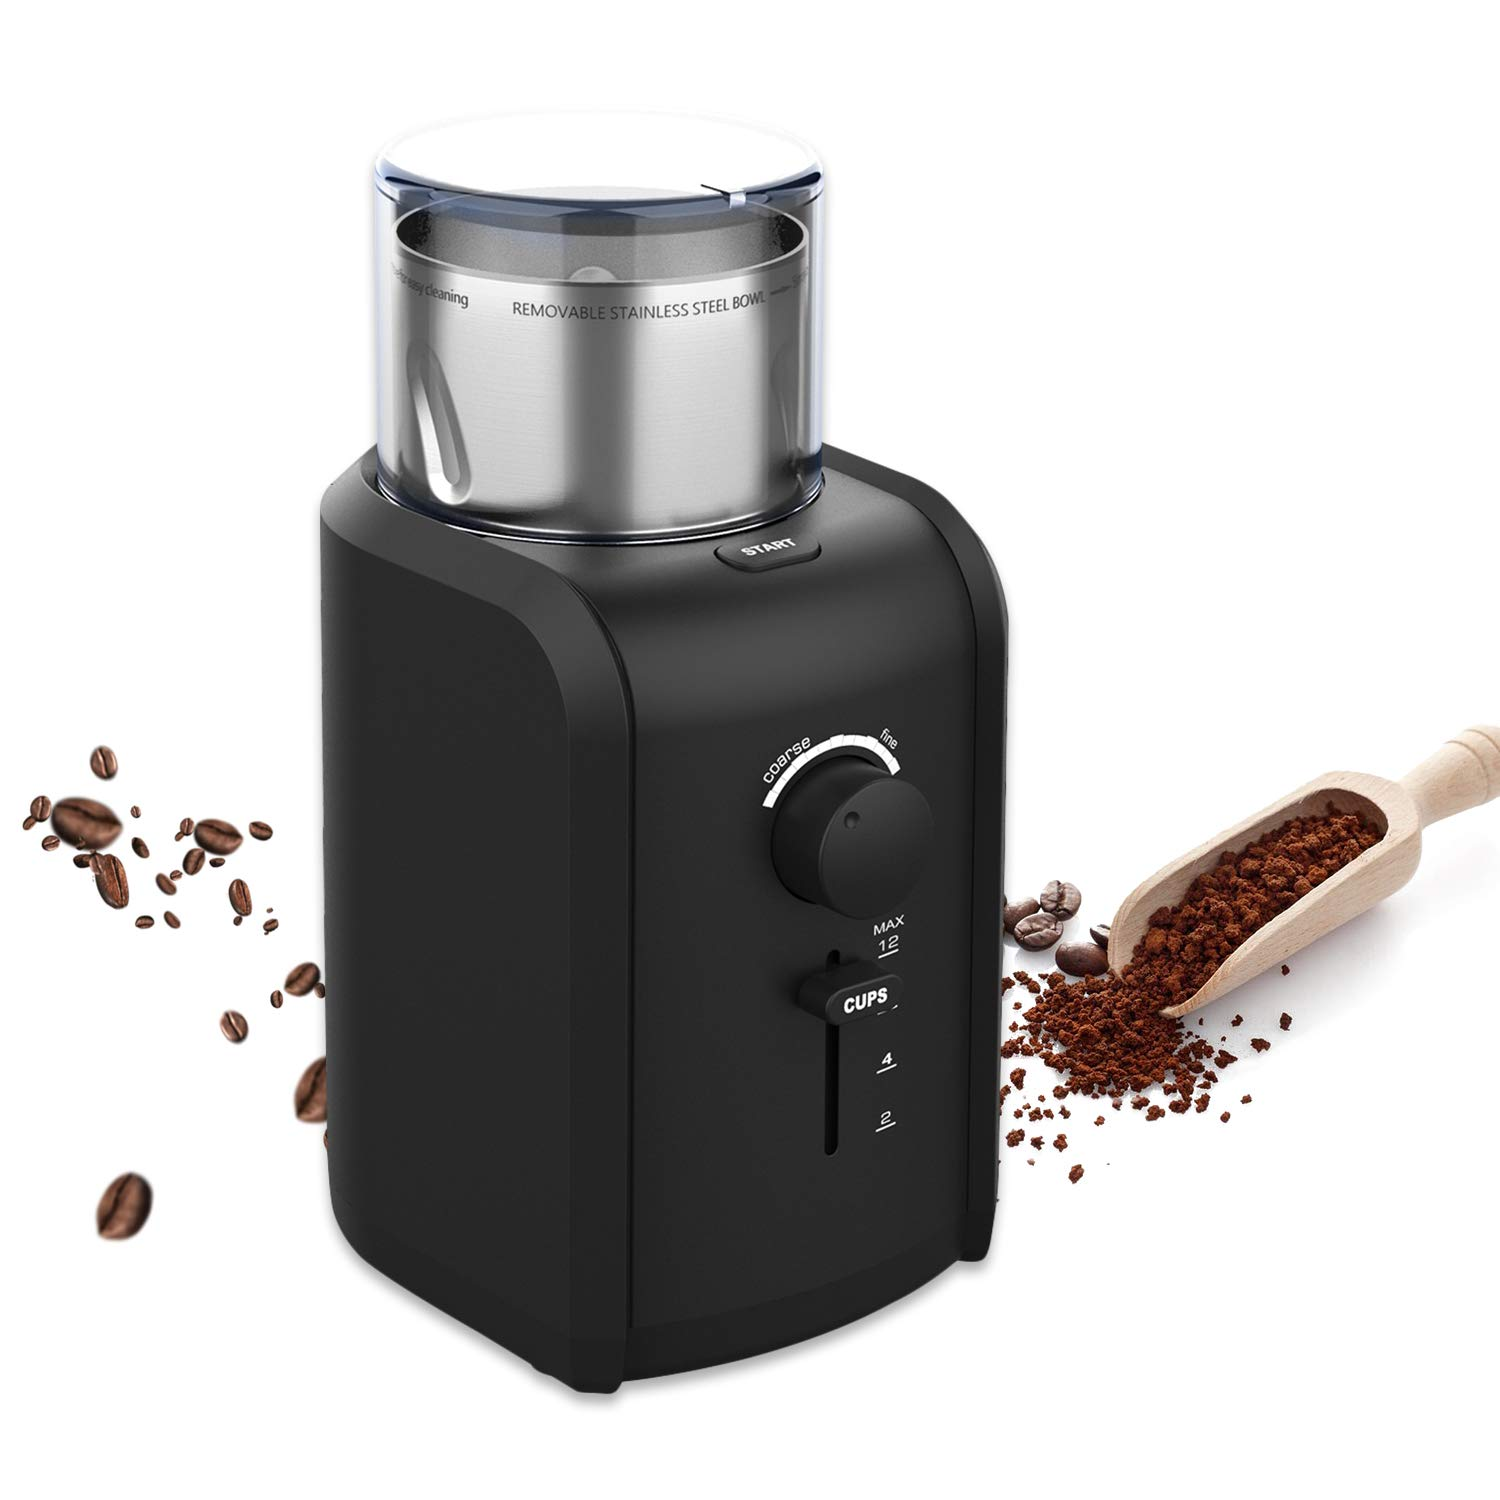 Electric Coffee Bean Grinder, Powerful Grinder, Grind Size & Cup Selection, Removable Cup, Stainless Steel, Easy Cleaning, Herbs, Grains, Nuts, Spice, 12 Cups, 200 Watt, Best Gifts (02) by ETE ETMATE